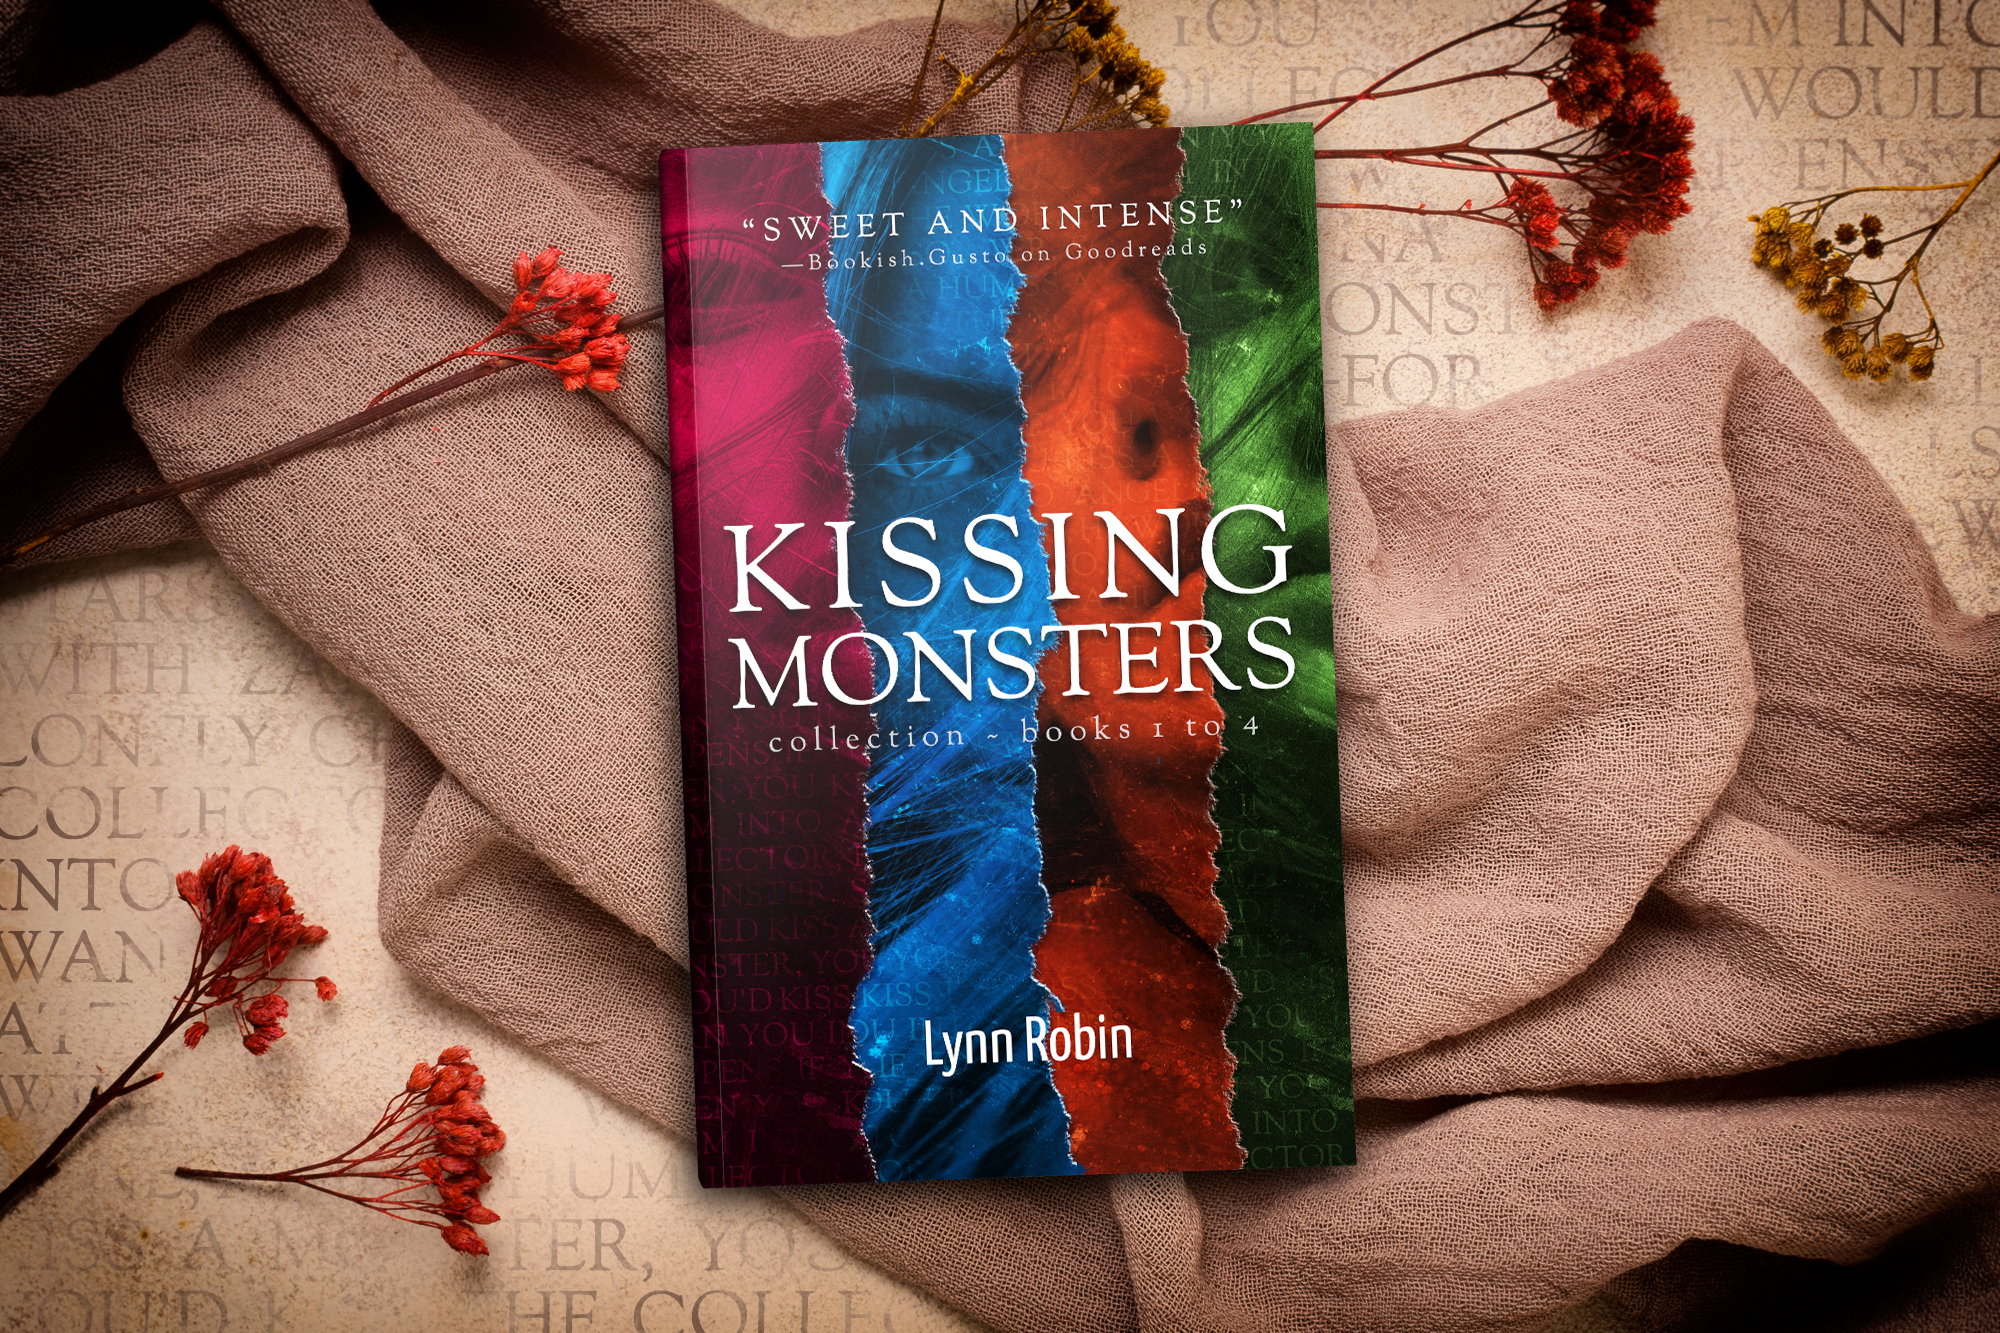 NEW RELEASE | OUT NOW: Kissing Monsters Collection #1 (Kissing Monsters 1—4)